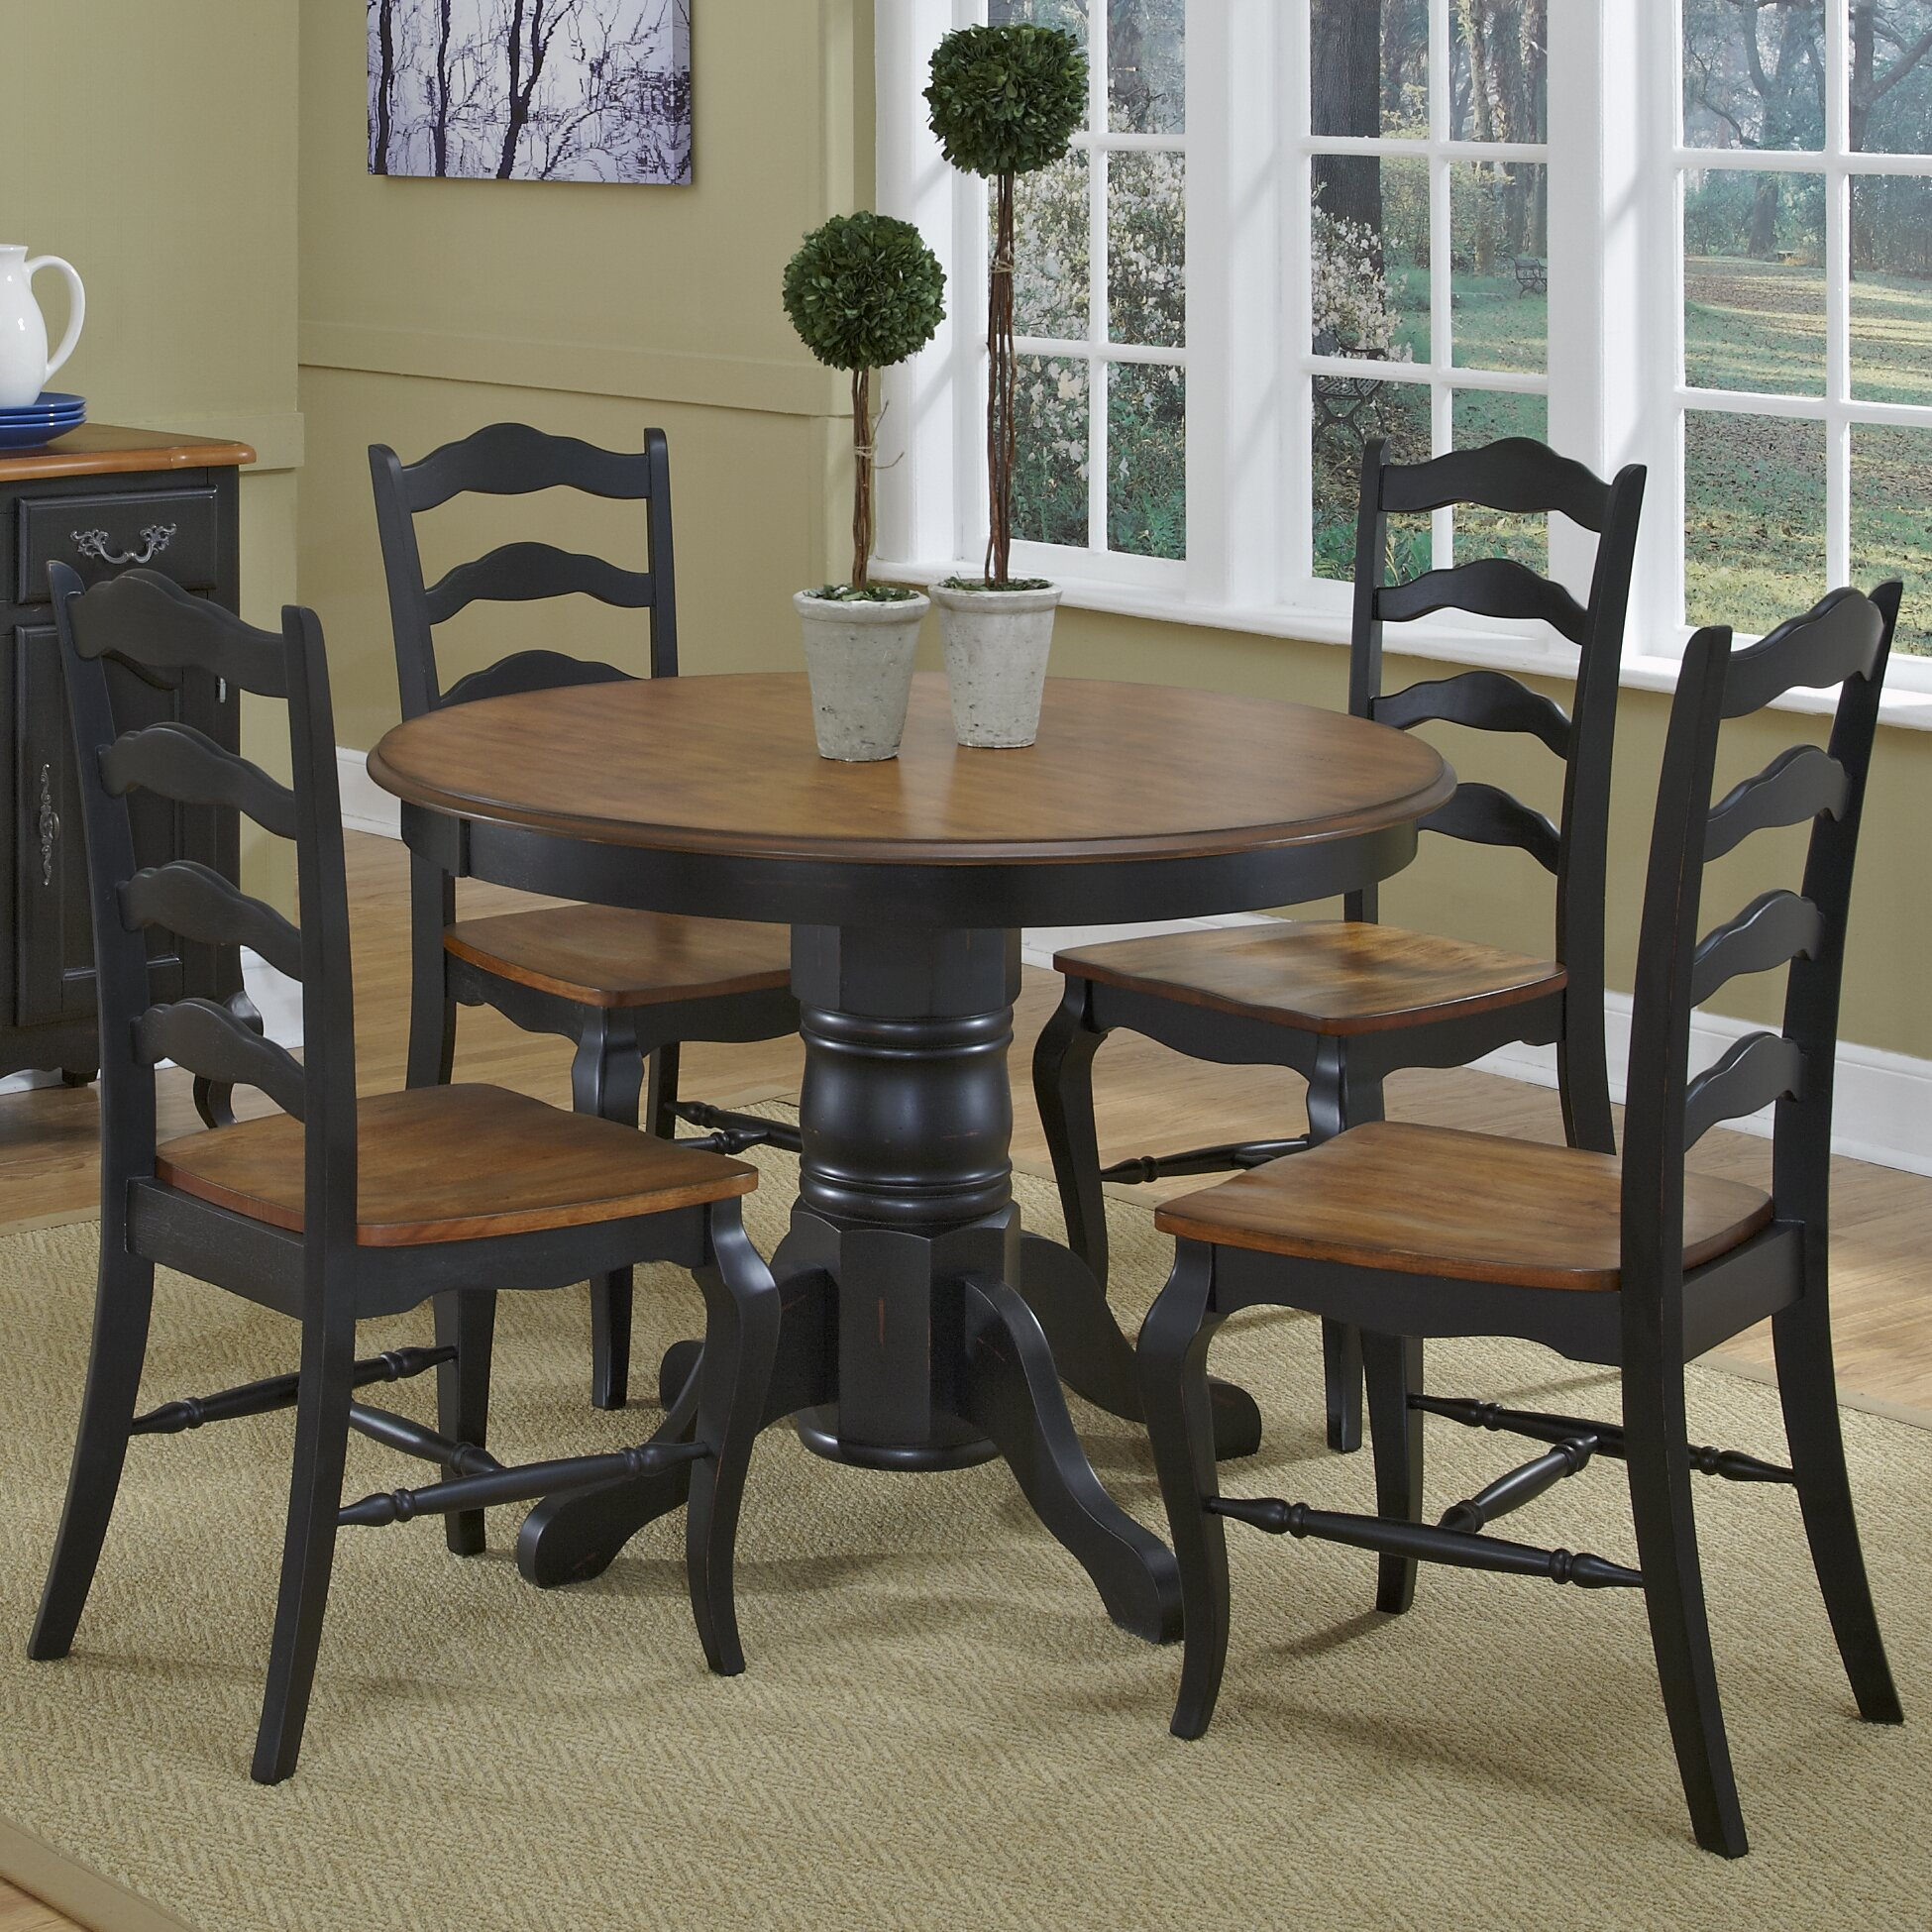 ... Thomasville Dining Room Sets Thomasville Chair Company Dining Room Set  ...